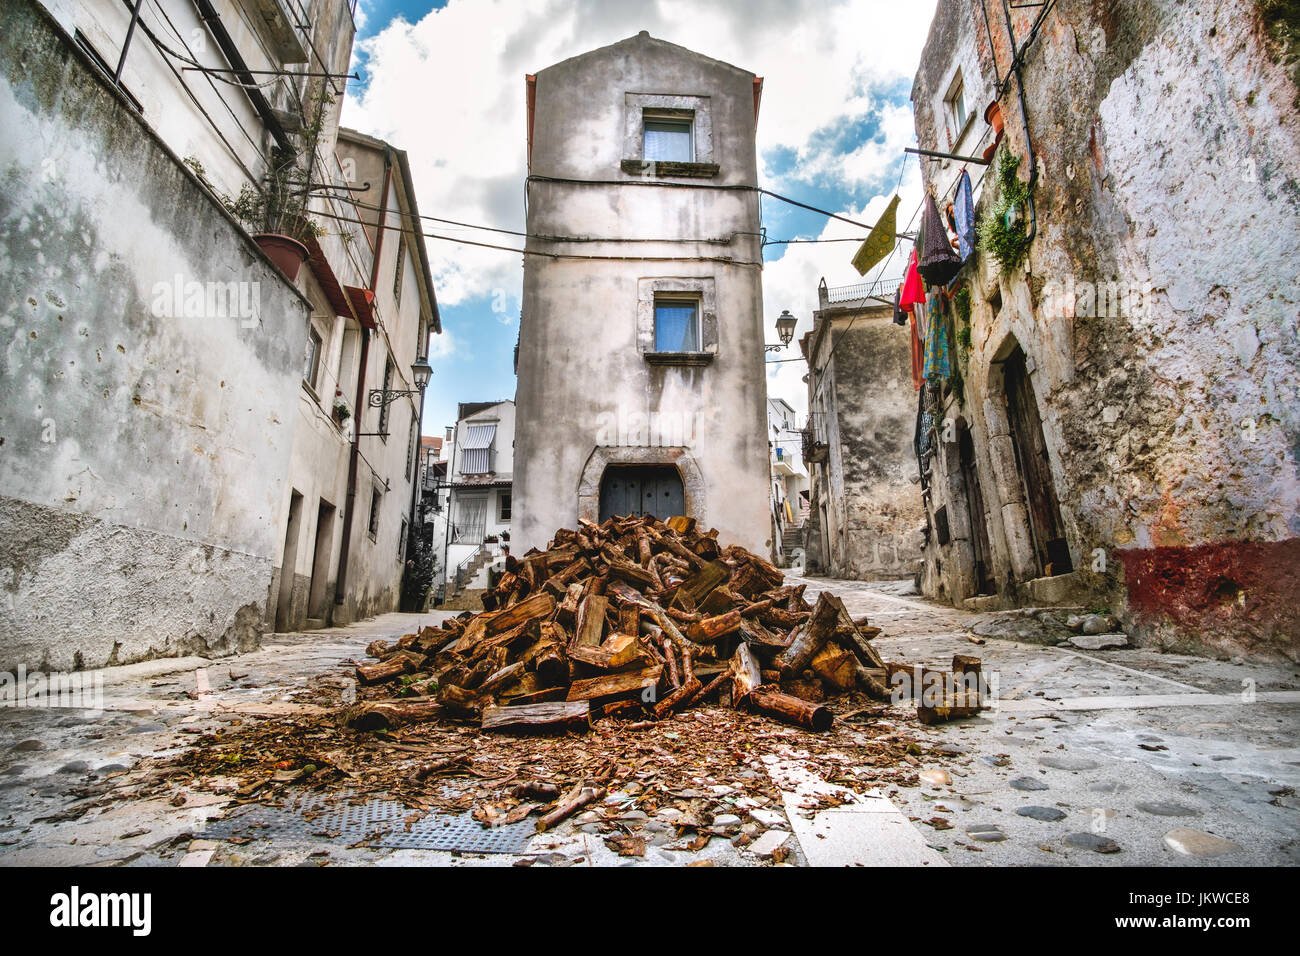 domestic heating firewood old in south italy village Vico del Gargano in Apulia - Stock Image